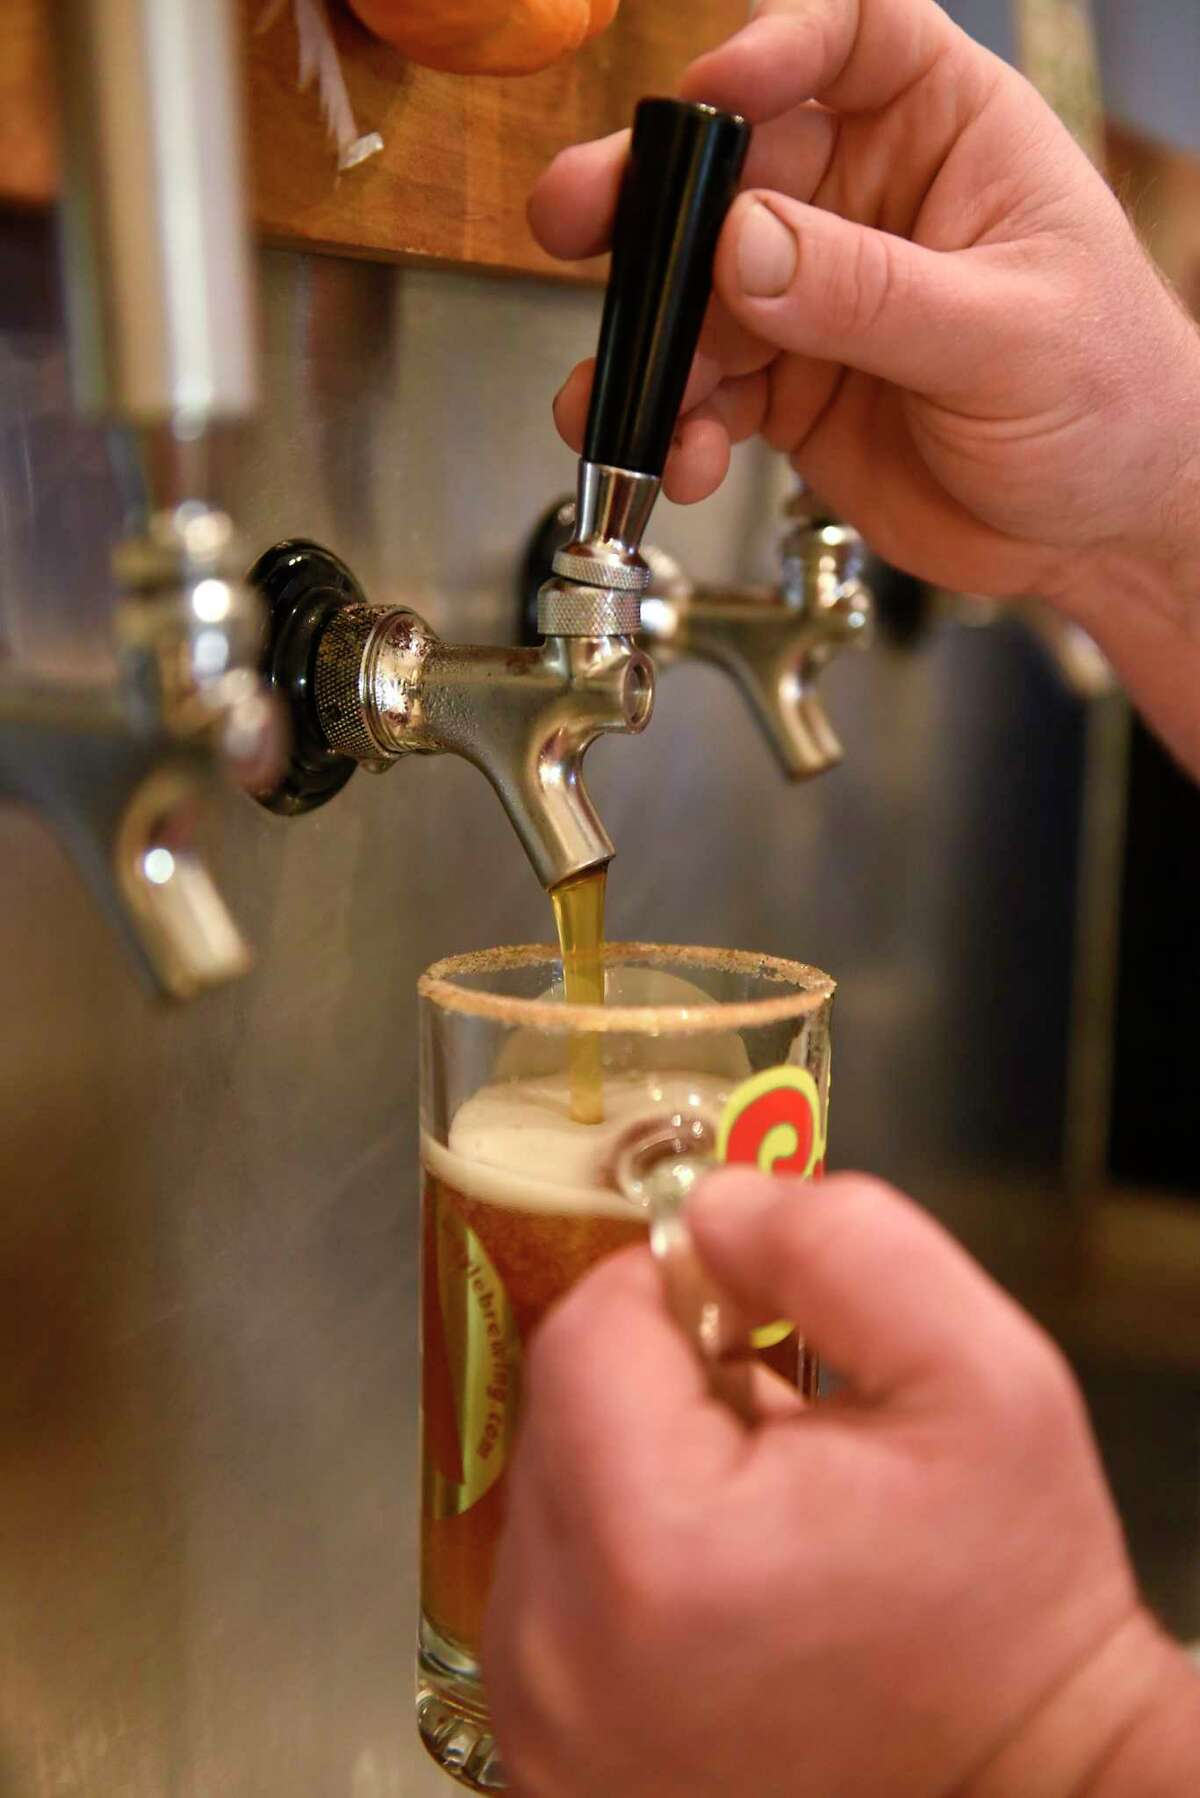 Sean Murphy pours a pumpkin ale at the Argyle Brewery Company on Thursday, Oct. 31, 2019 in Greenwich, N.Y. (Lori Van Buren/Times Union)